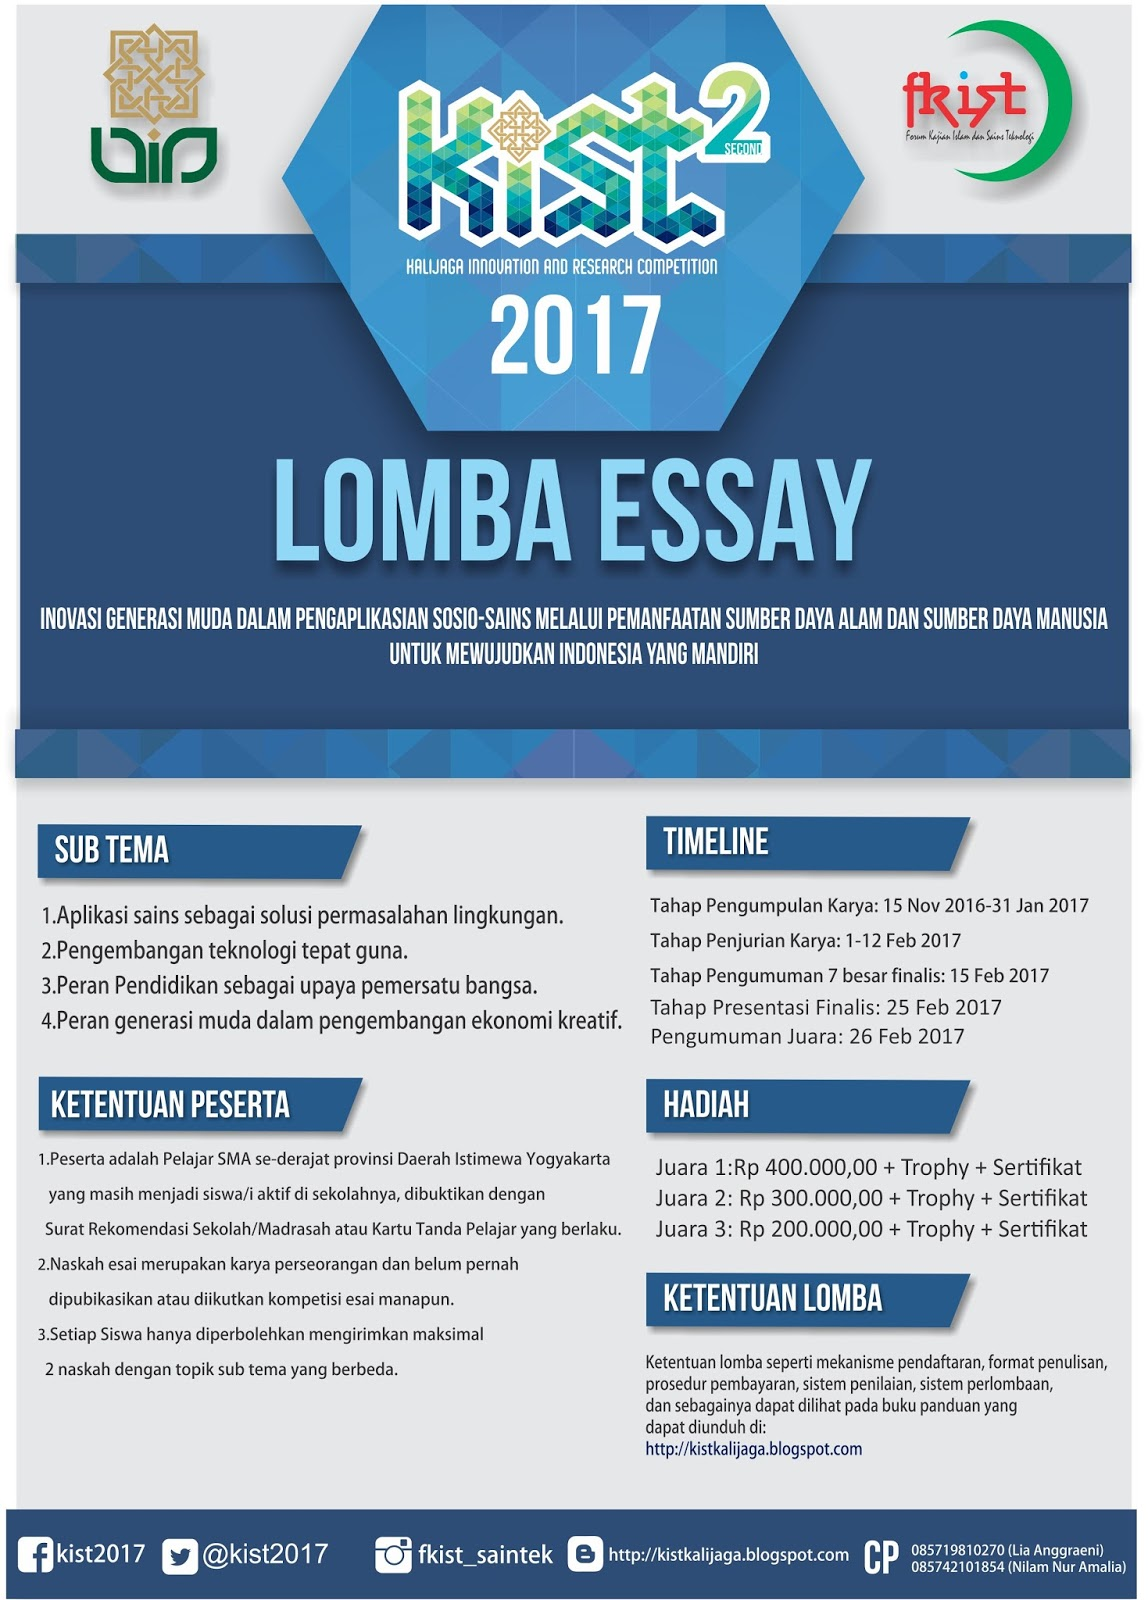 KIST 2nd (Kalijaga Innovation and Research Competition) 2017